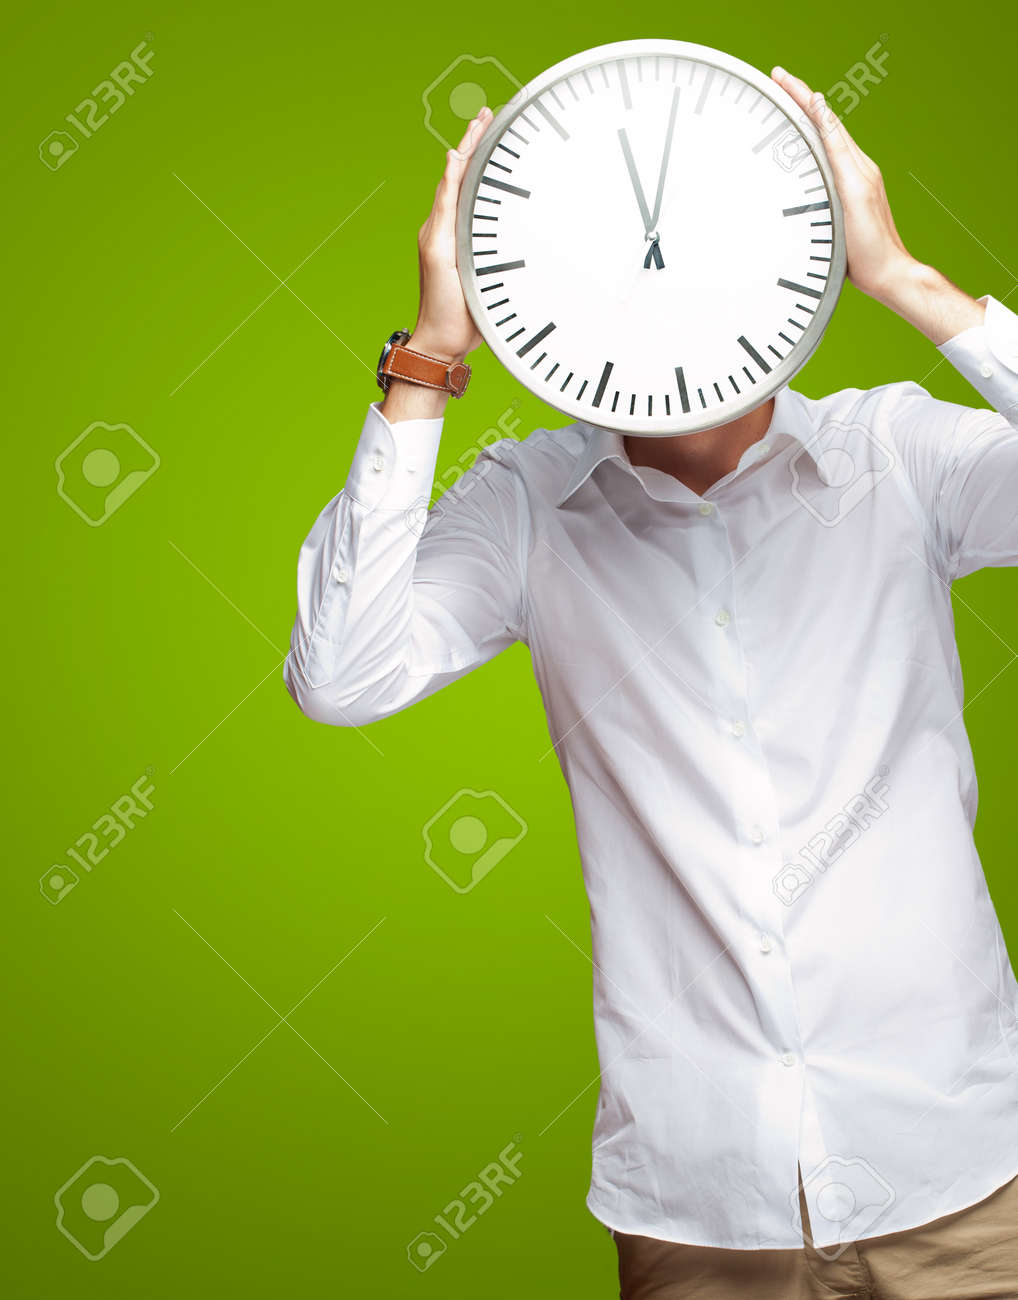 Young Man Holding Big Clock Covering His Face On Green Background Stock Photo - 15186874